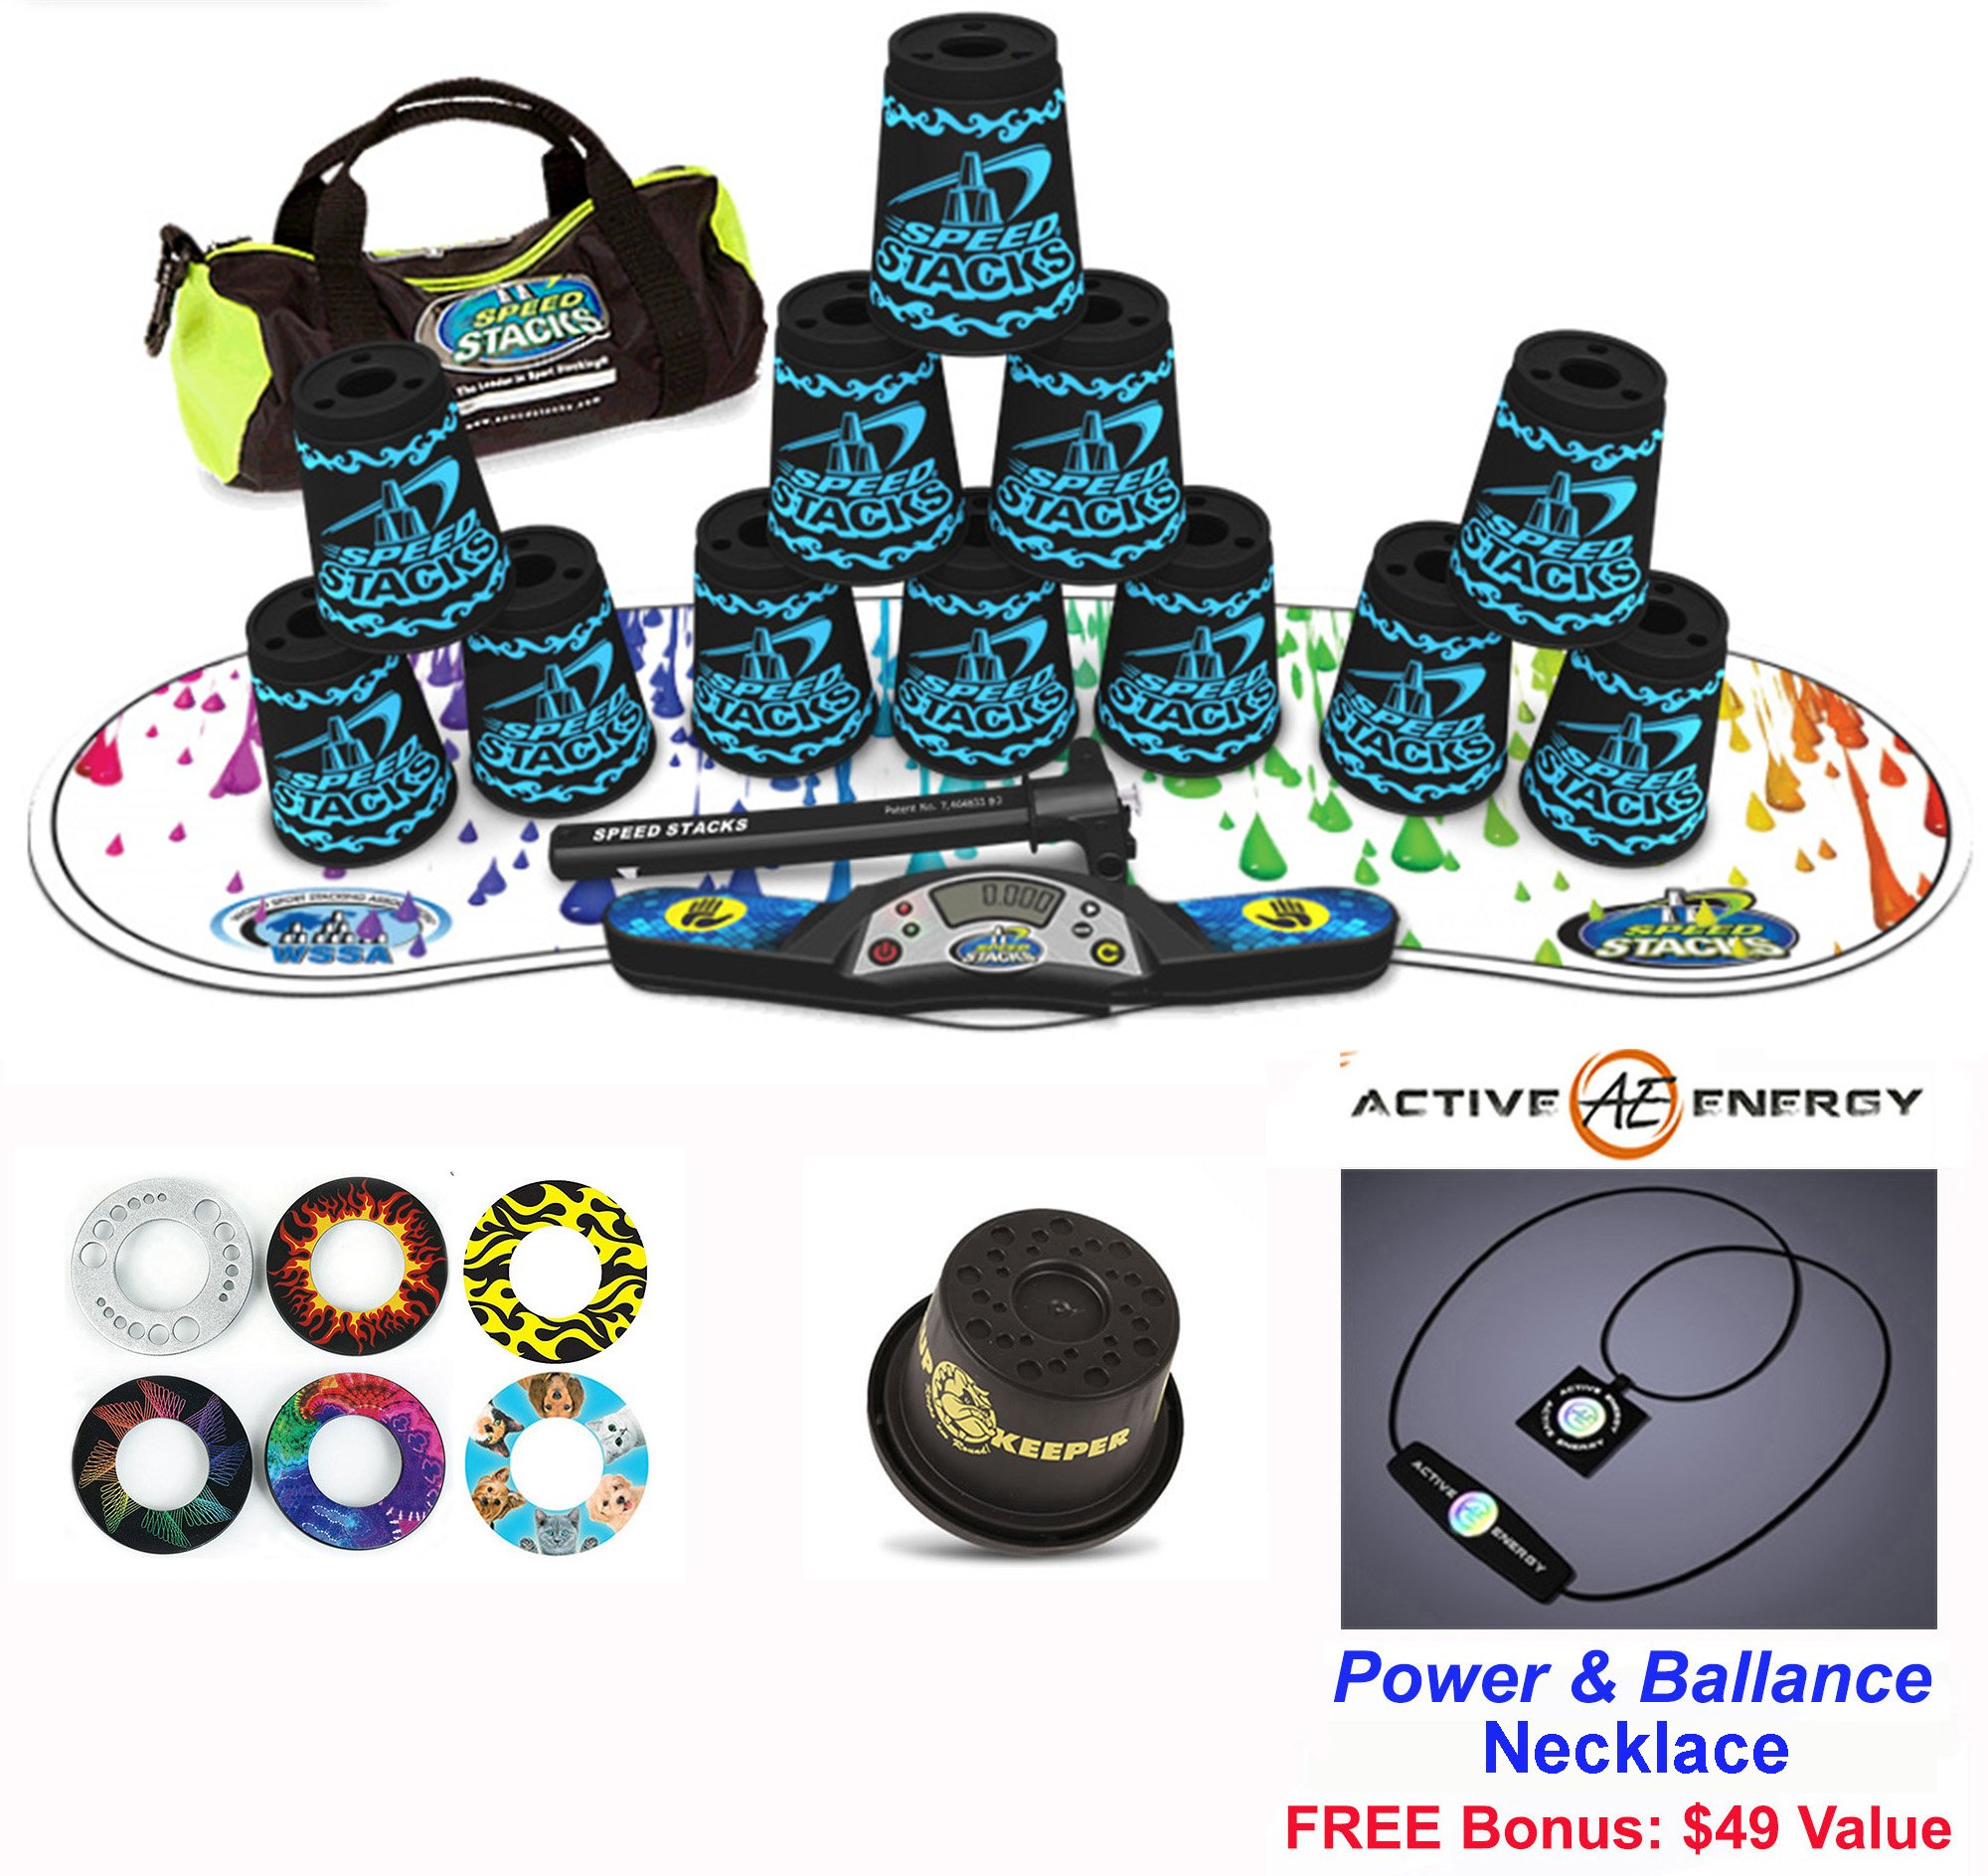 Speed Stacks Combo Set ''The Works'': 12 TATTOO 4'' Cups, RAINBOW DROP Gen 3 Mat, G4 Pro Timer, Cup Keeper, Stem, Gear Bag + Active Energy Necklace by Speed Stacks